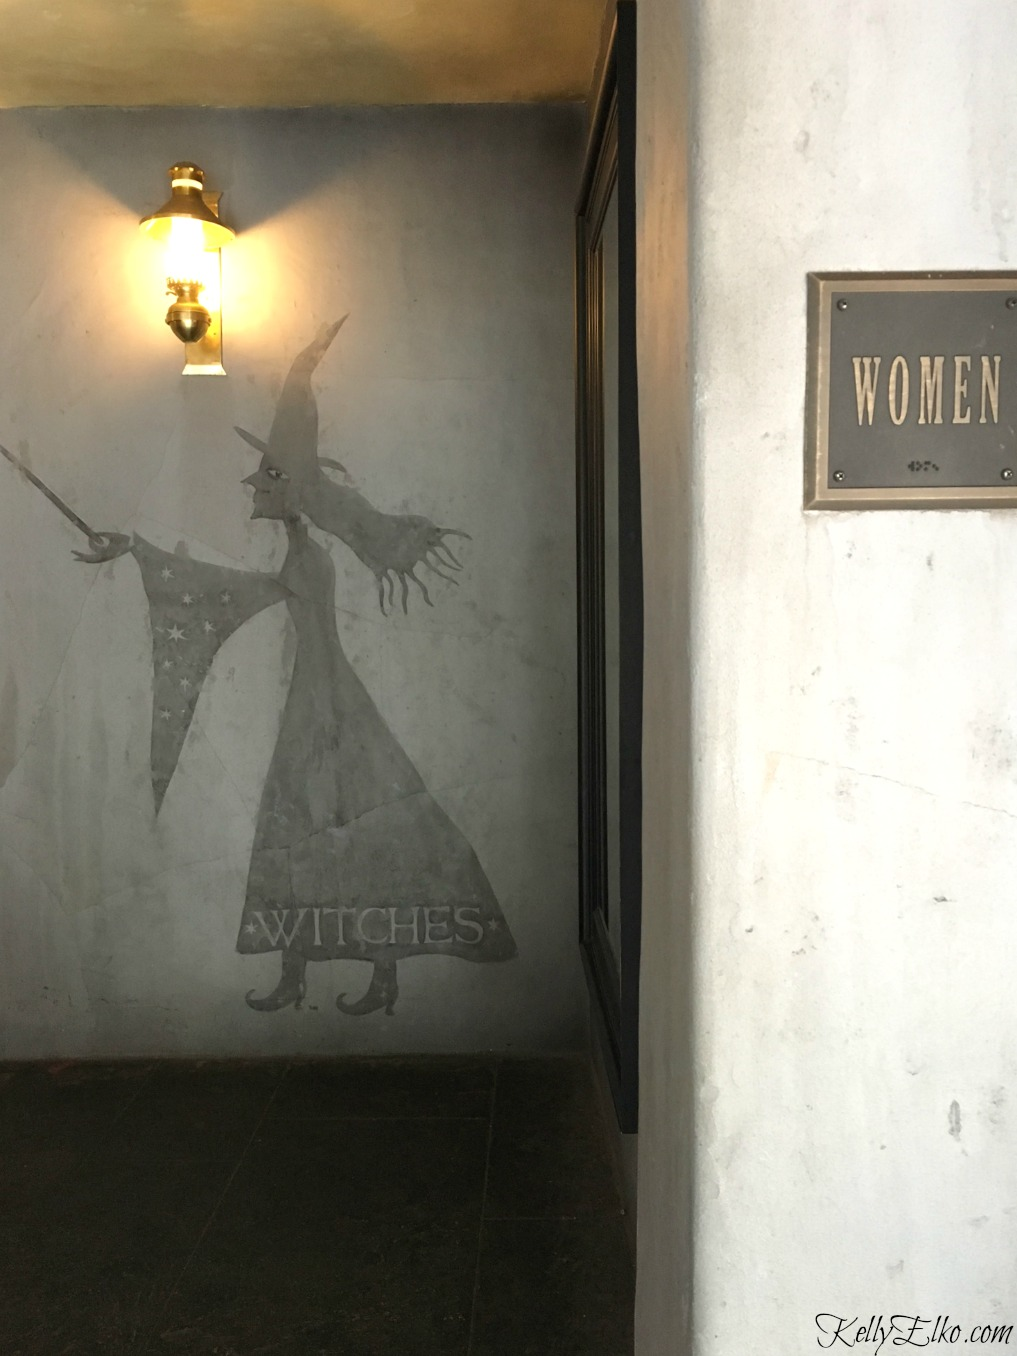 Witches ladies room at the Wizarding World of Harry Potter kellyelko.com